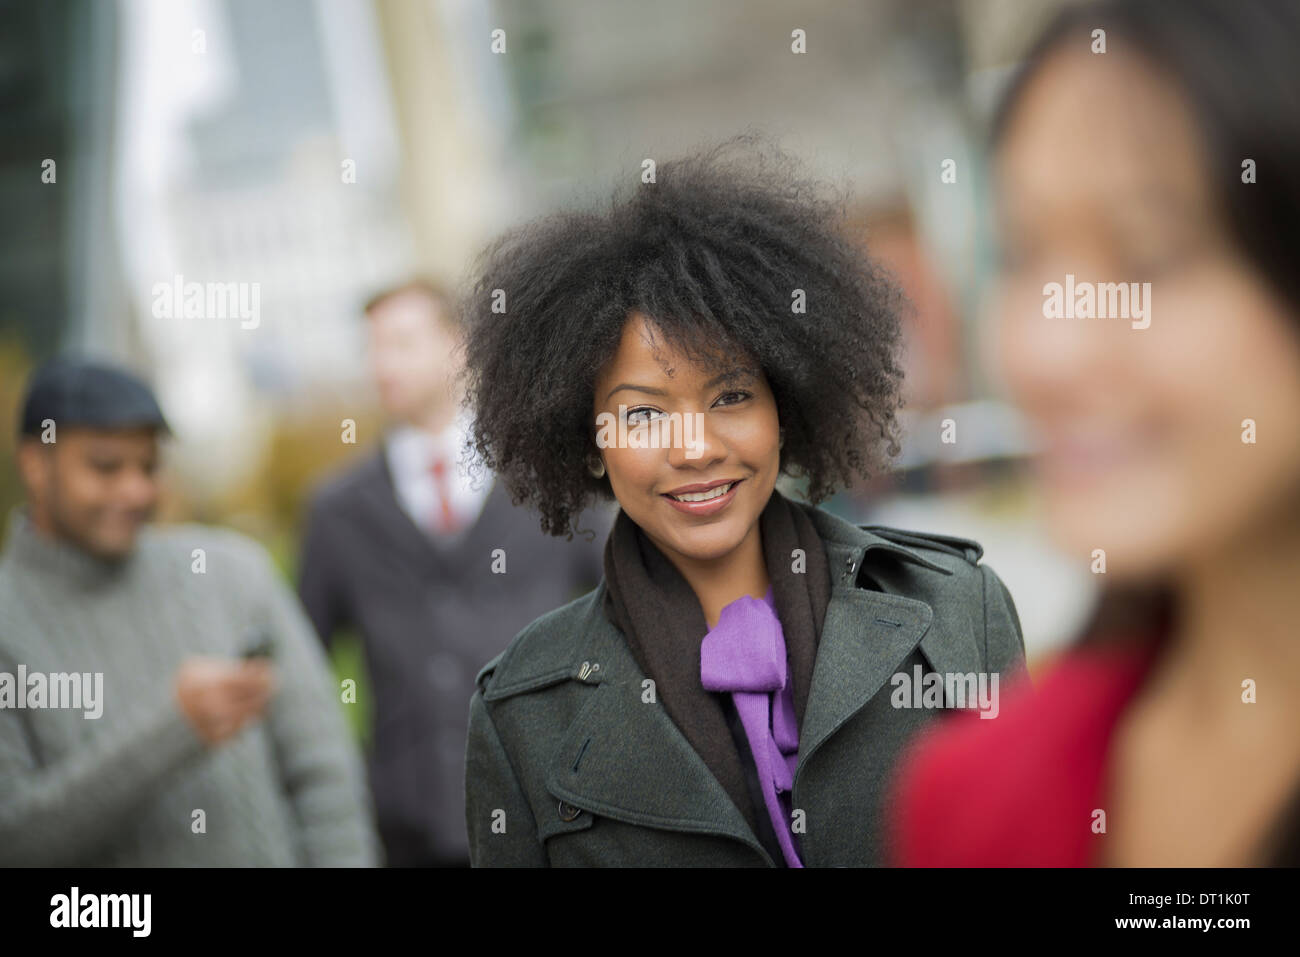 using mobile phones and talking to each other Men and women - Stock Image